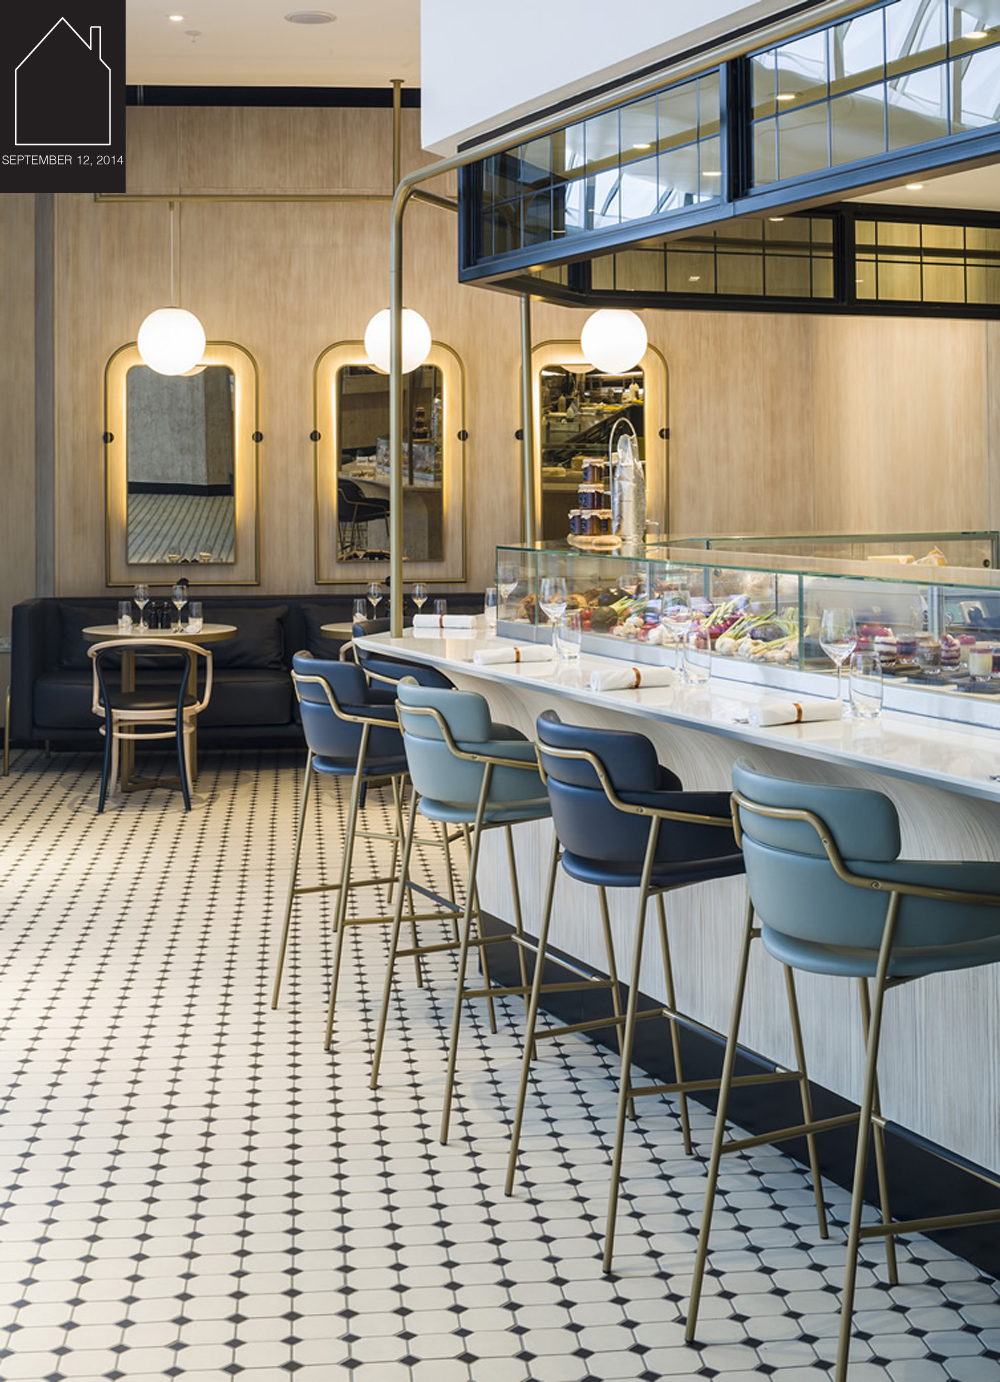 The Gorgeous Kitchen at Heathrow Airport via  wh  design by  Blacksheep